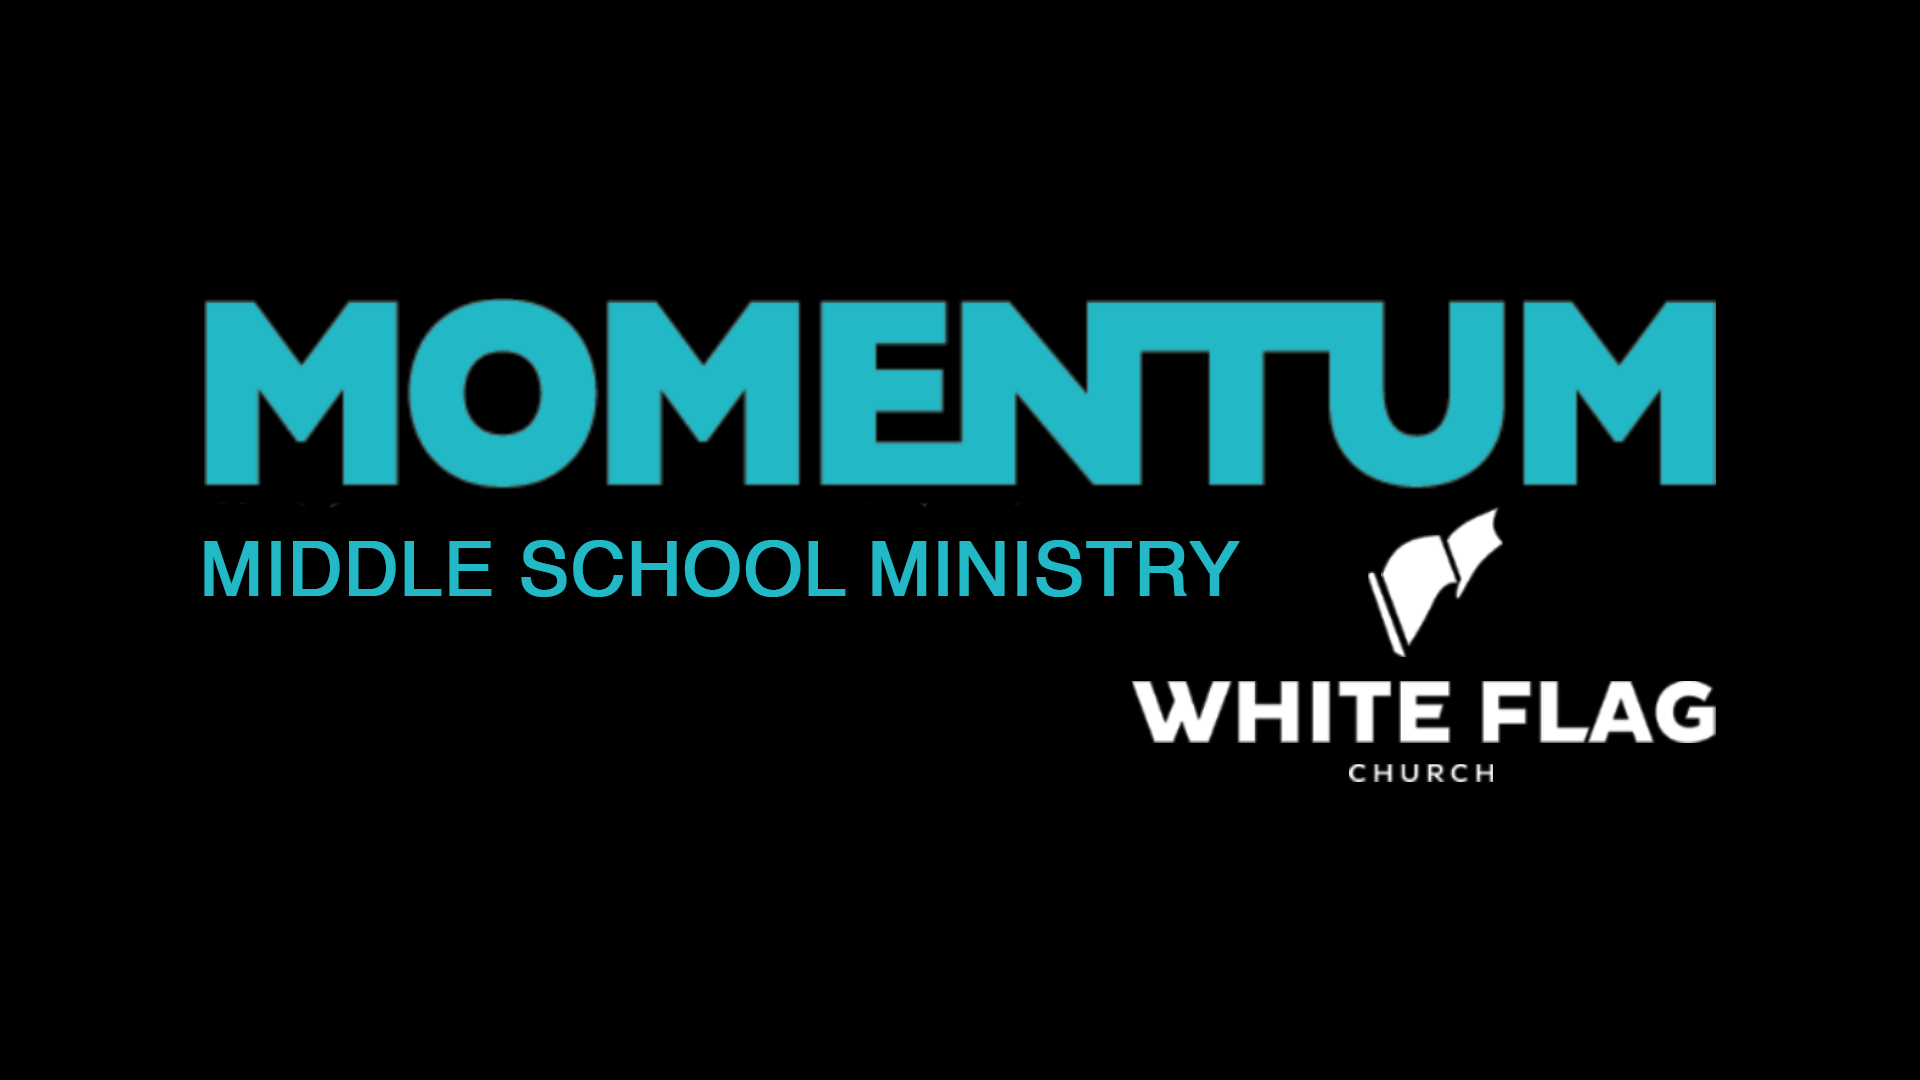 Momentum Middle School Ministry Image 1920x1080 (2)